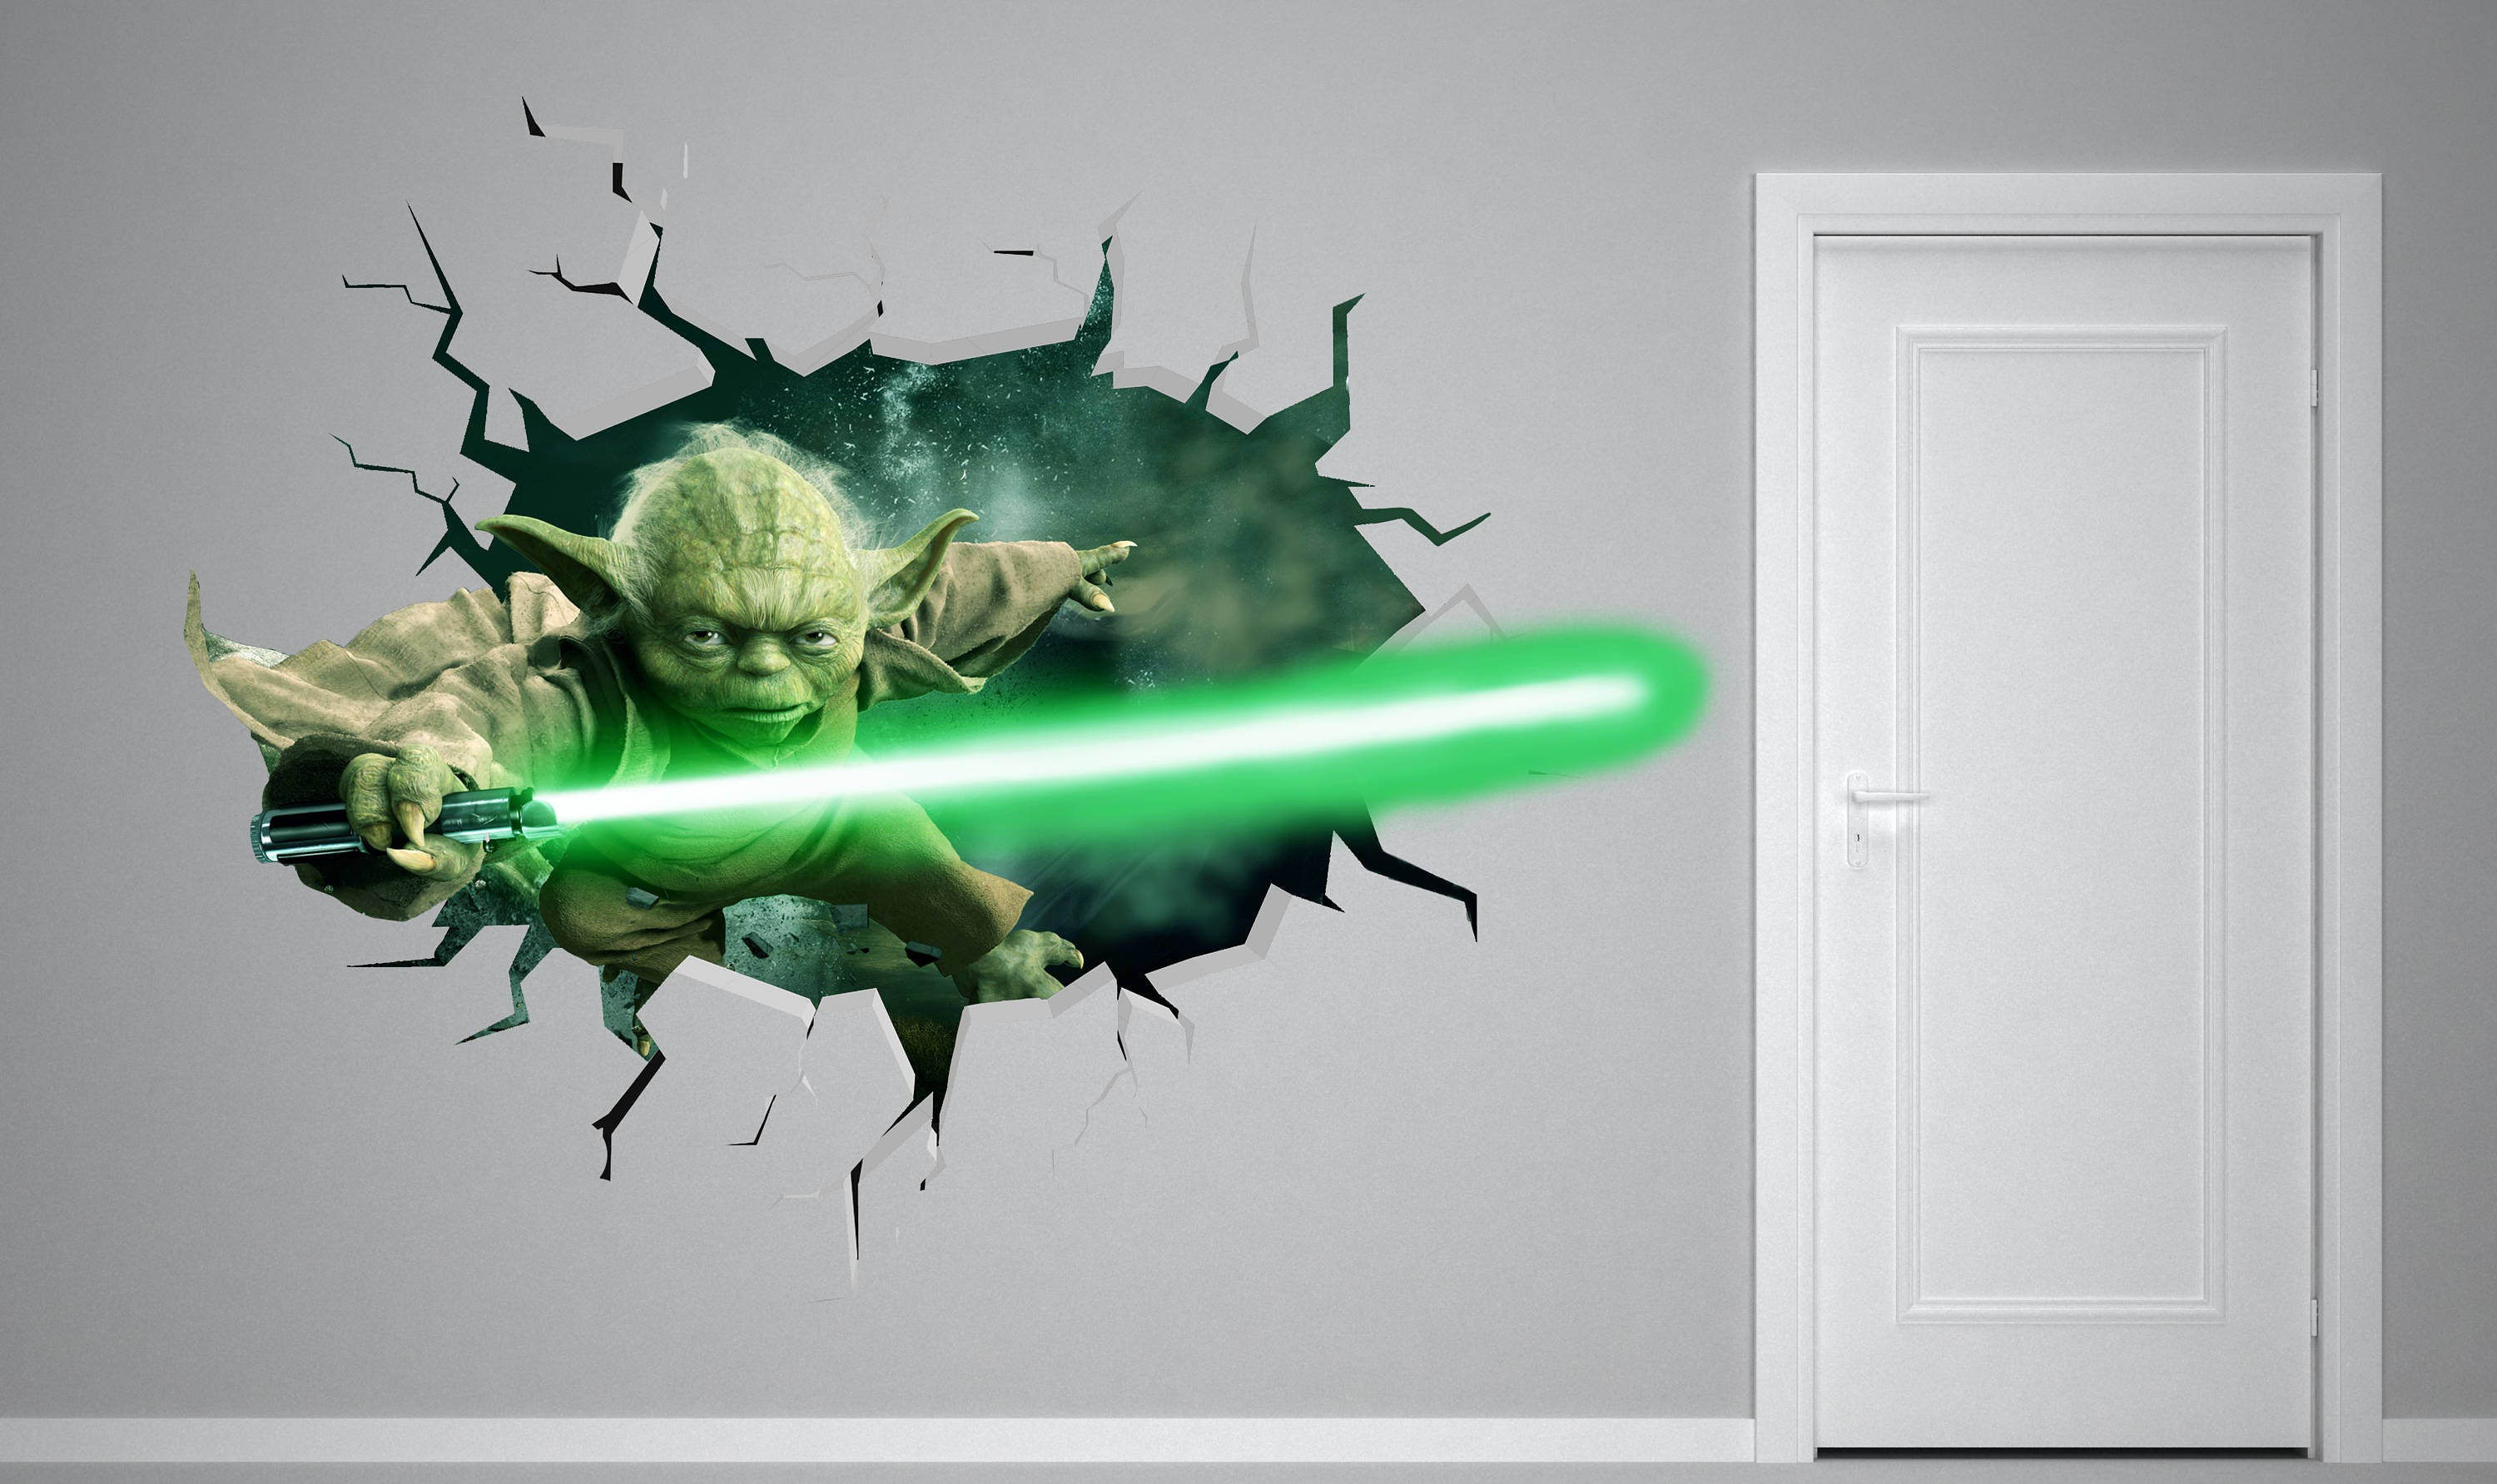 Yoda Star Wars 3D Smashed Wall Decal Kids Sticker Art Decor Vinyl Poster Mural & Yoda Star Wars 3D Smashed Wall Decal Kids Sticker Art Decor Vinyl ...